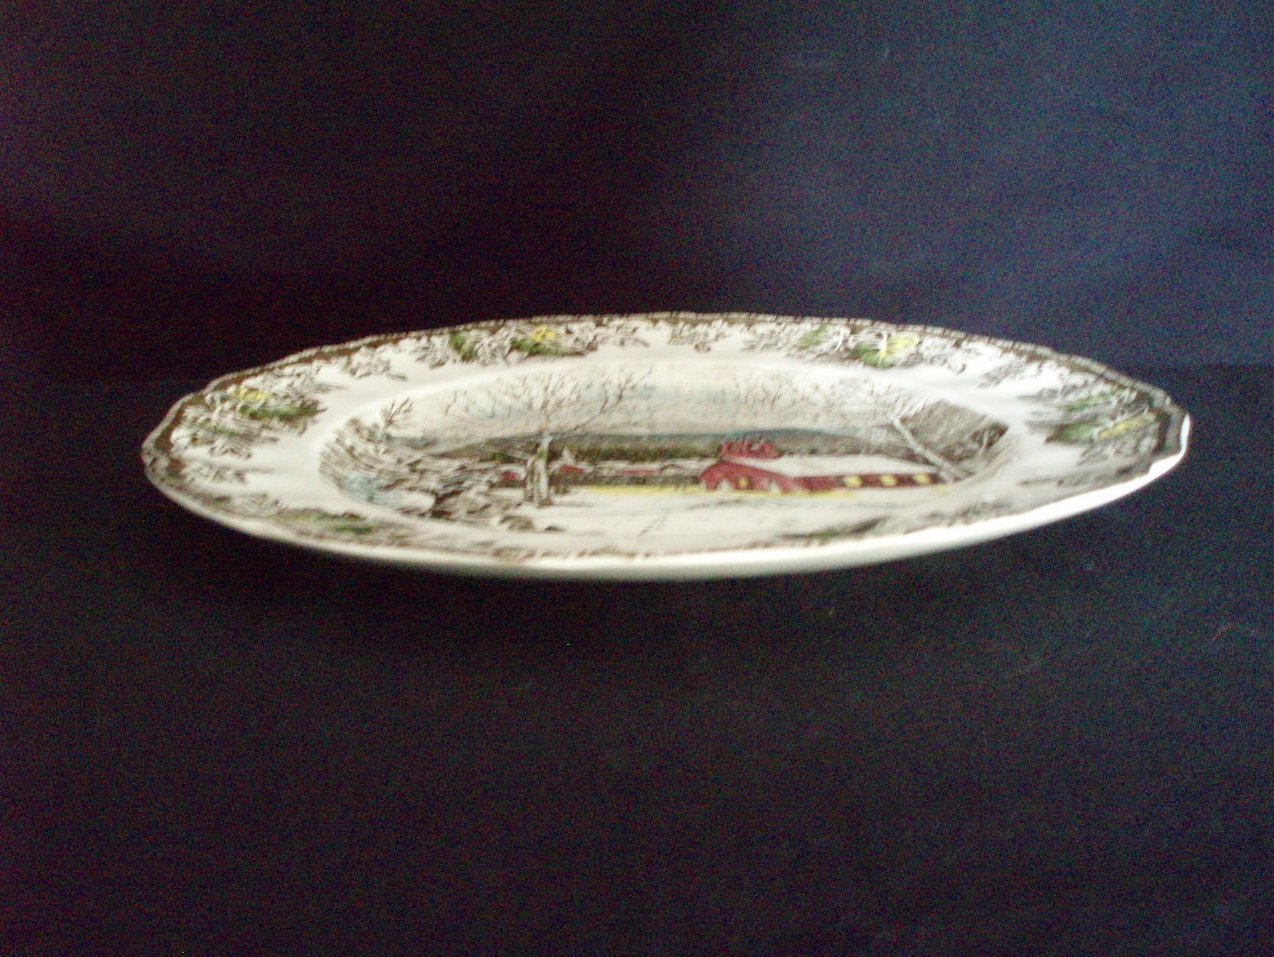 Image 4 of Johnson Brothers Friendly Village Dinner plate Schoolhouse